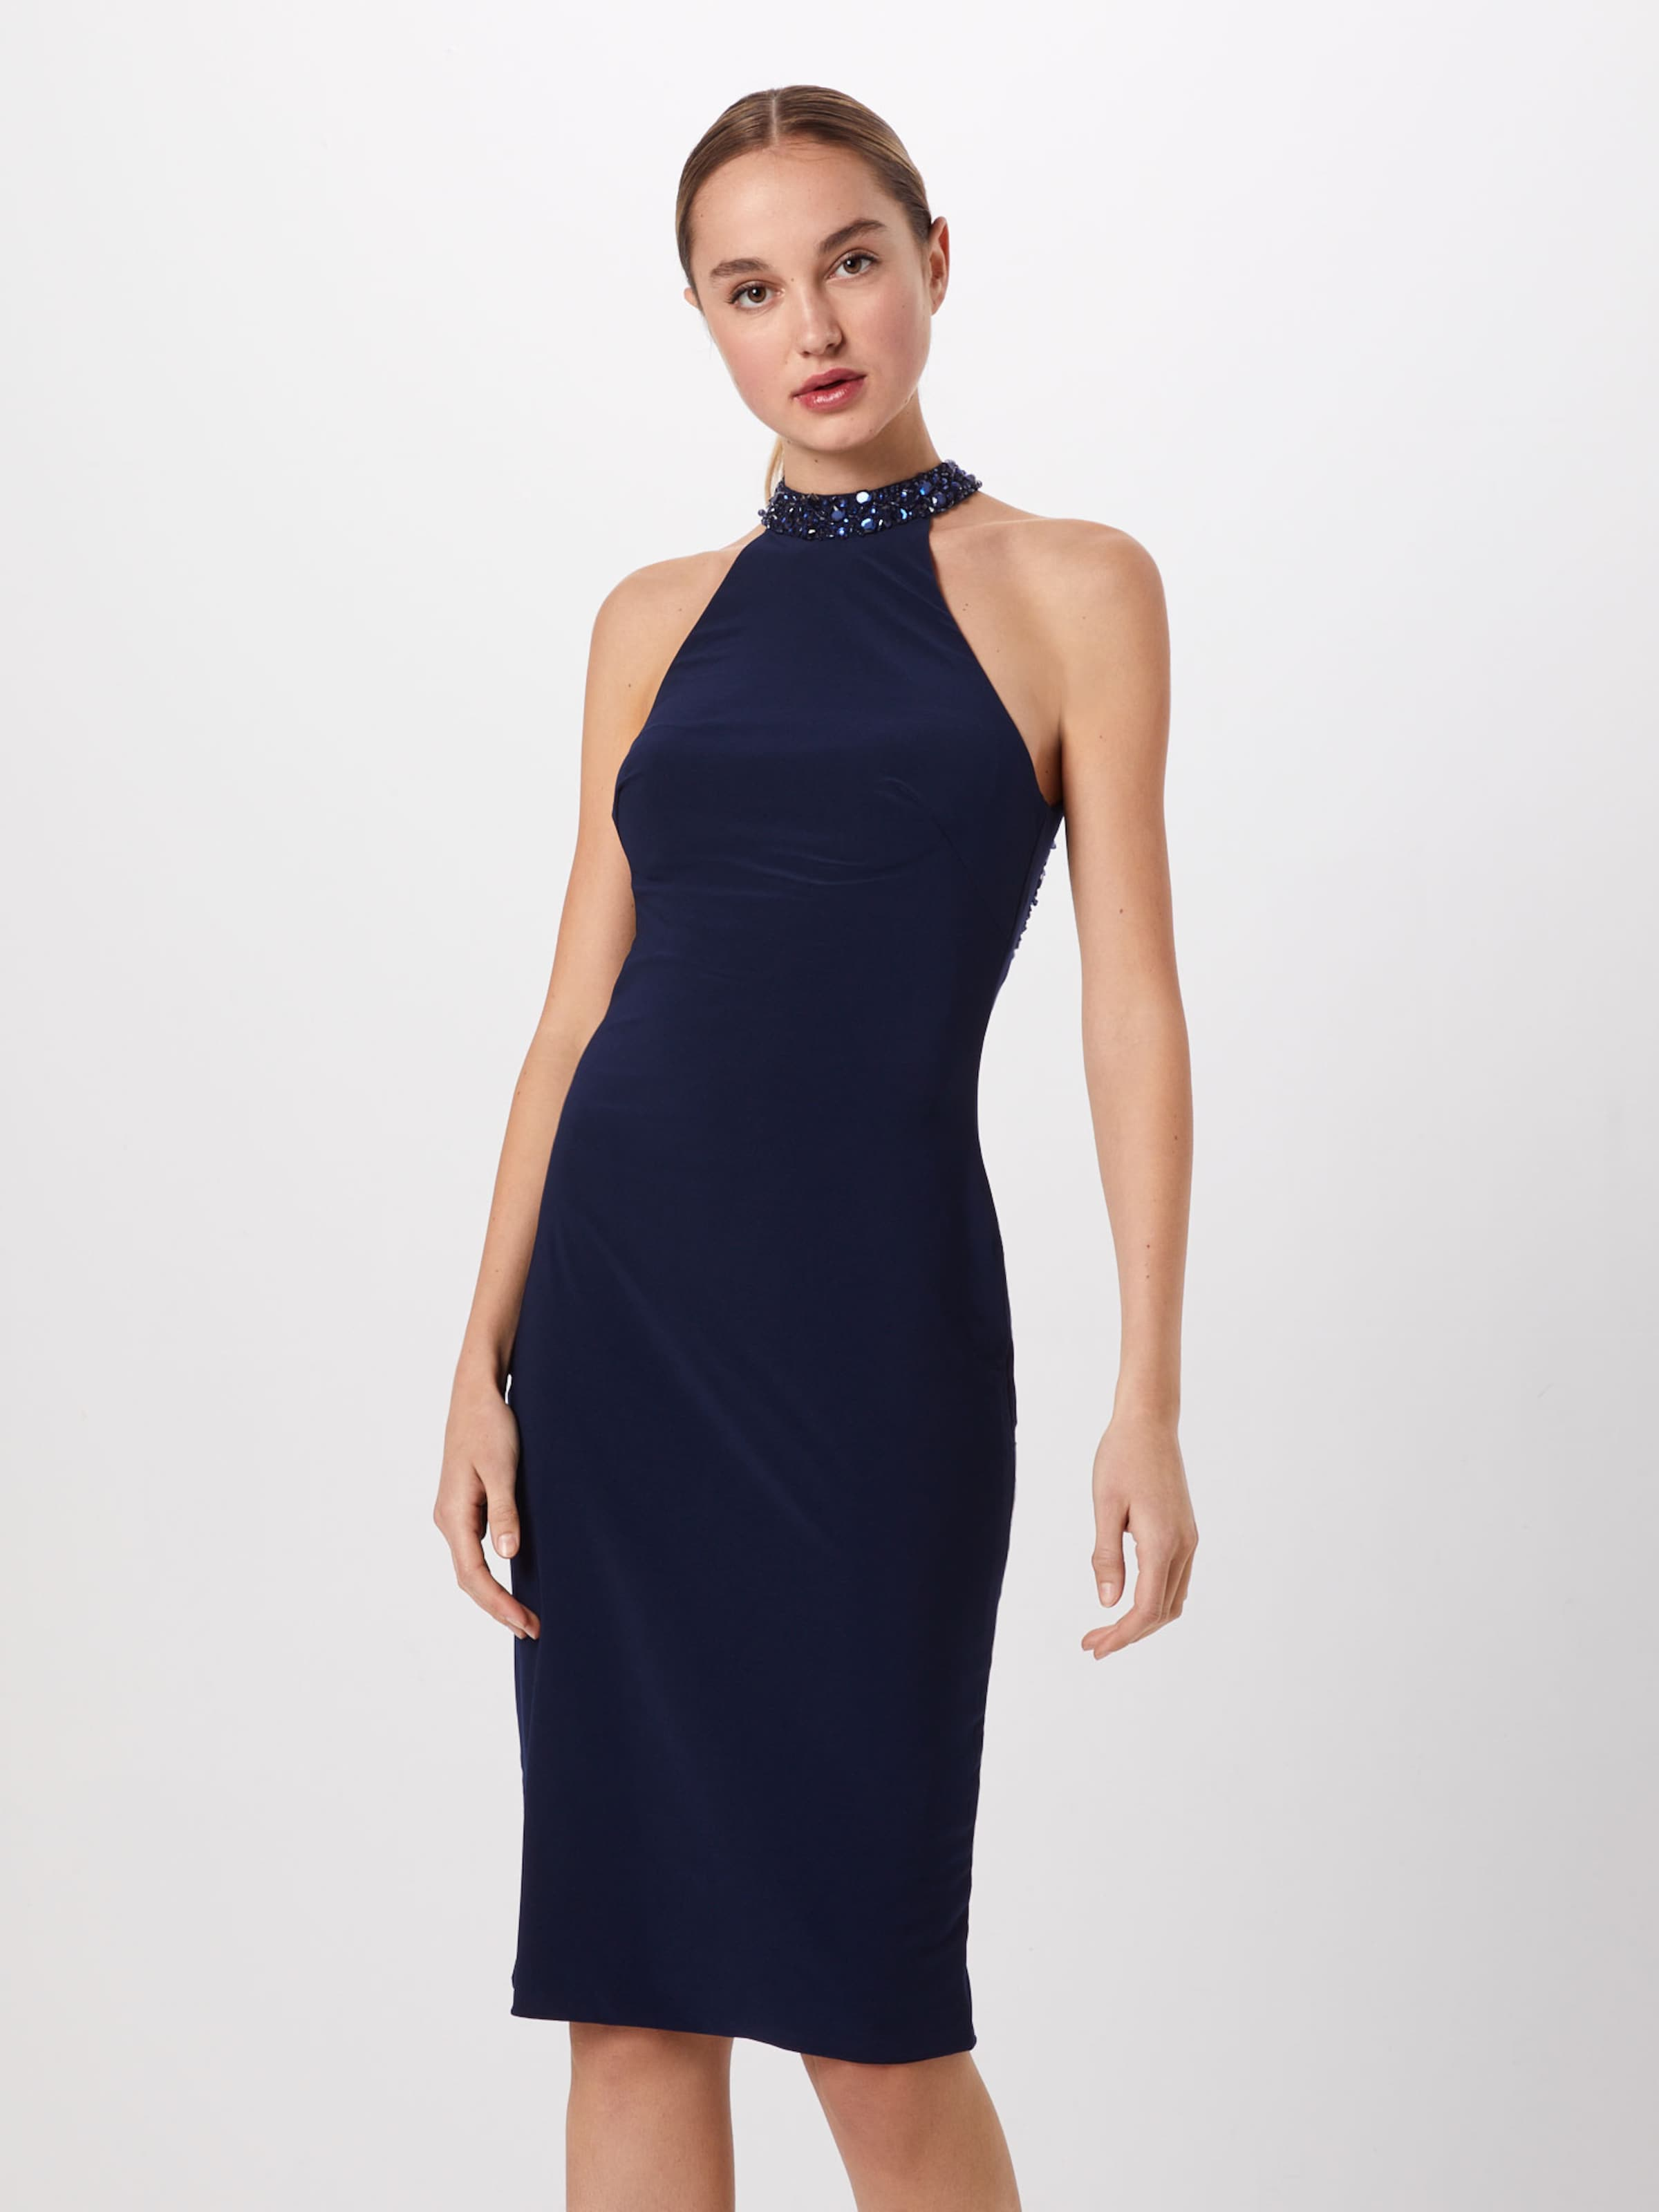 Navy Cocktail' In Drop Kleid 'tear Mascara LSpGjUzVqM